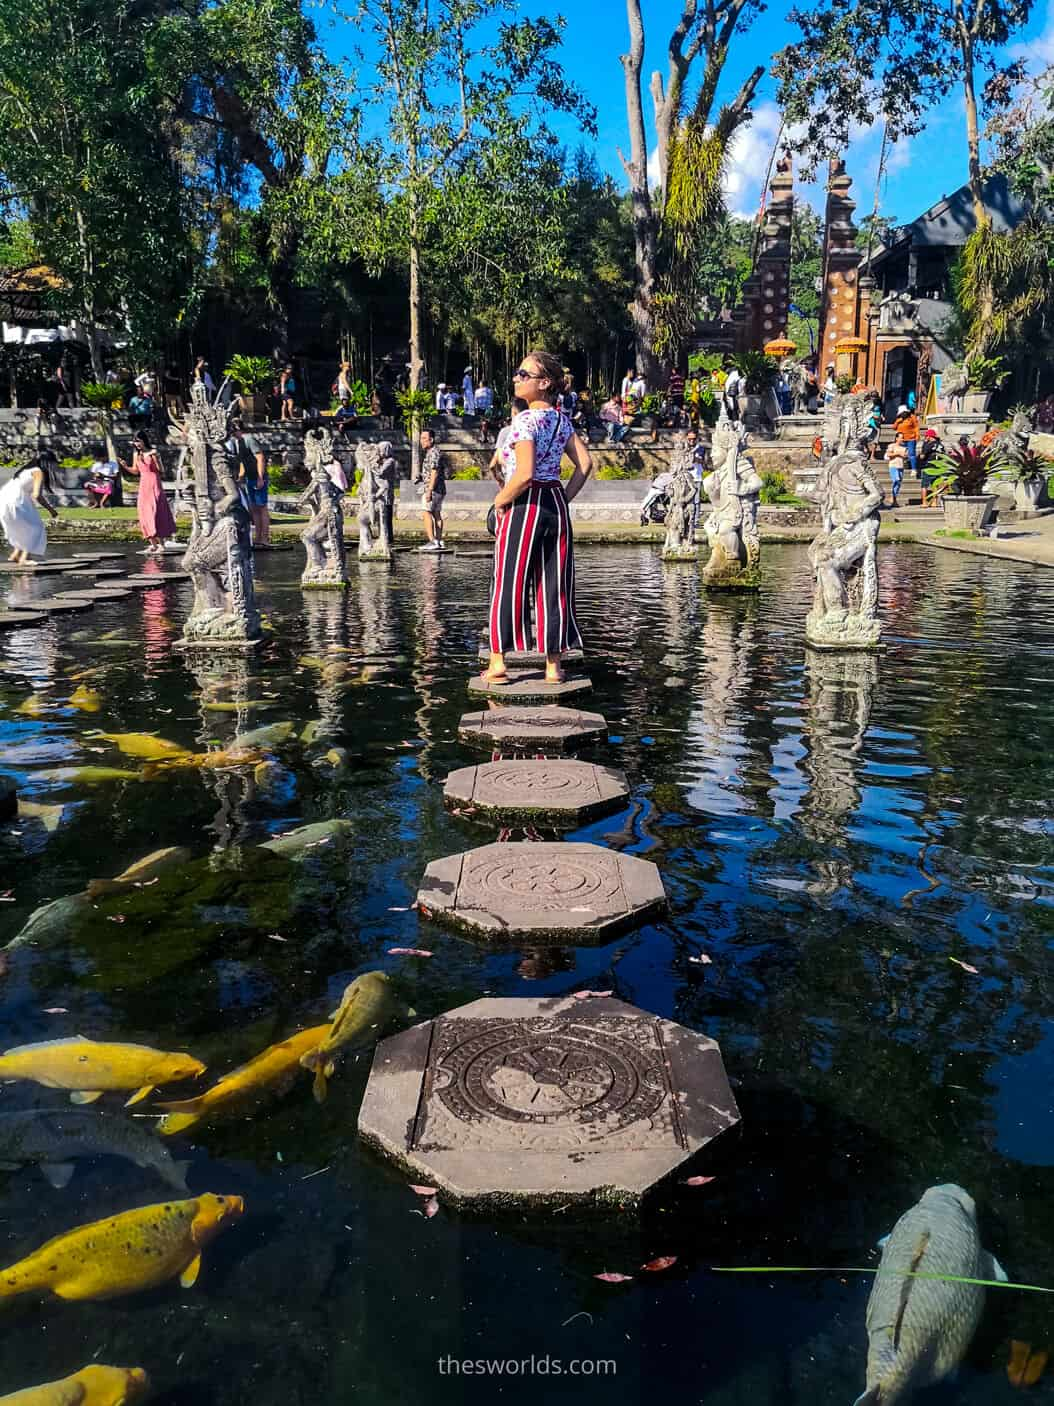 Girl posing on a rock in the water at Bali